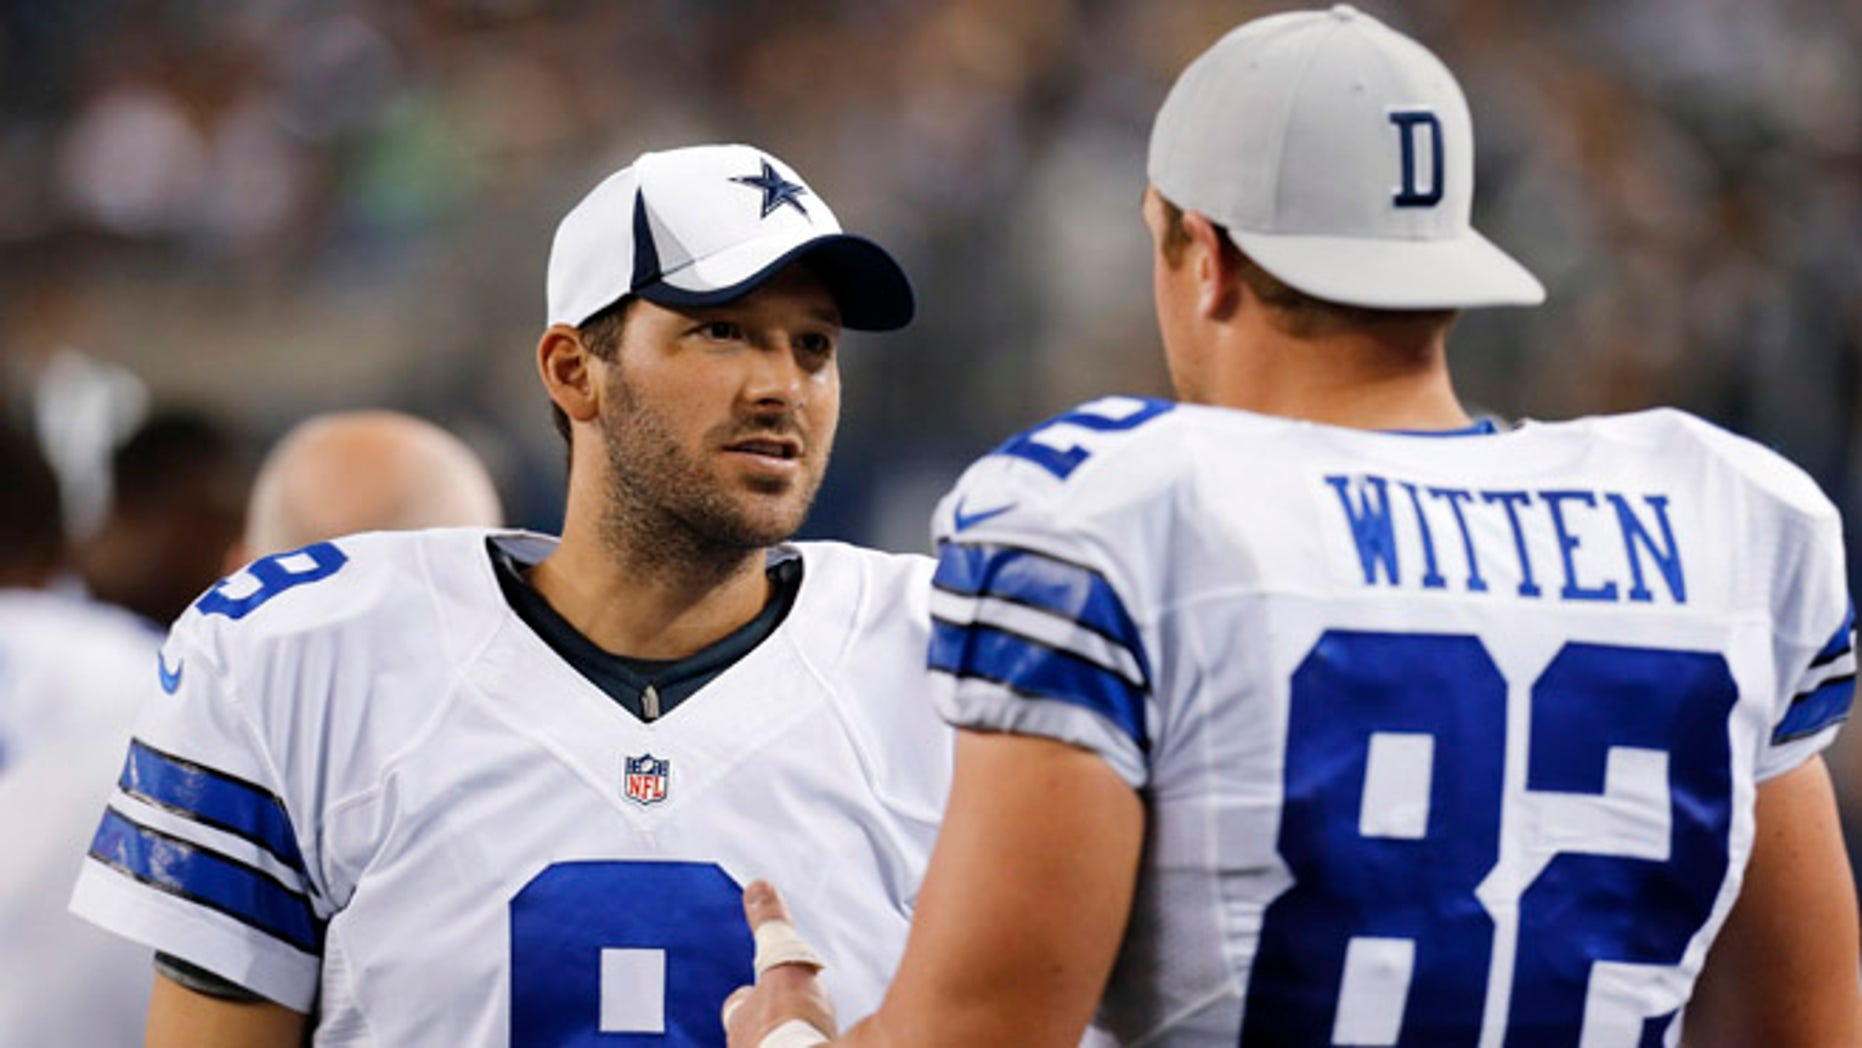 FILE -  In this Saturday, Aug. 24, 2013 file photo, Dallas Cowboys quarterback Tony Romo (9) and tight end Jason Witten (82) talk on the sideline during the second half of a preseason NFL football game against the Cincinnati Bengals,in Arlington, Texas. Quarterback Tony Romo is hurt again, and his favorite tight end is here to tell you the Cowboys can make it work without him, Tuesday, Aug. 30, 2016. (AP Photo/Sharon Ellman, File)